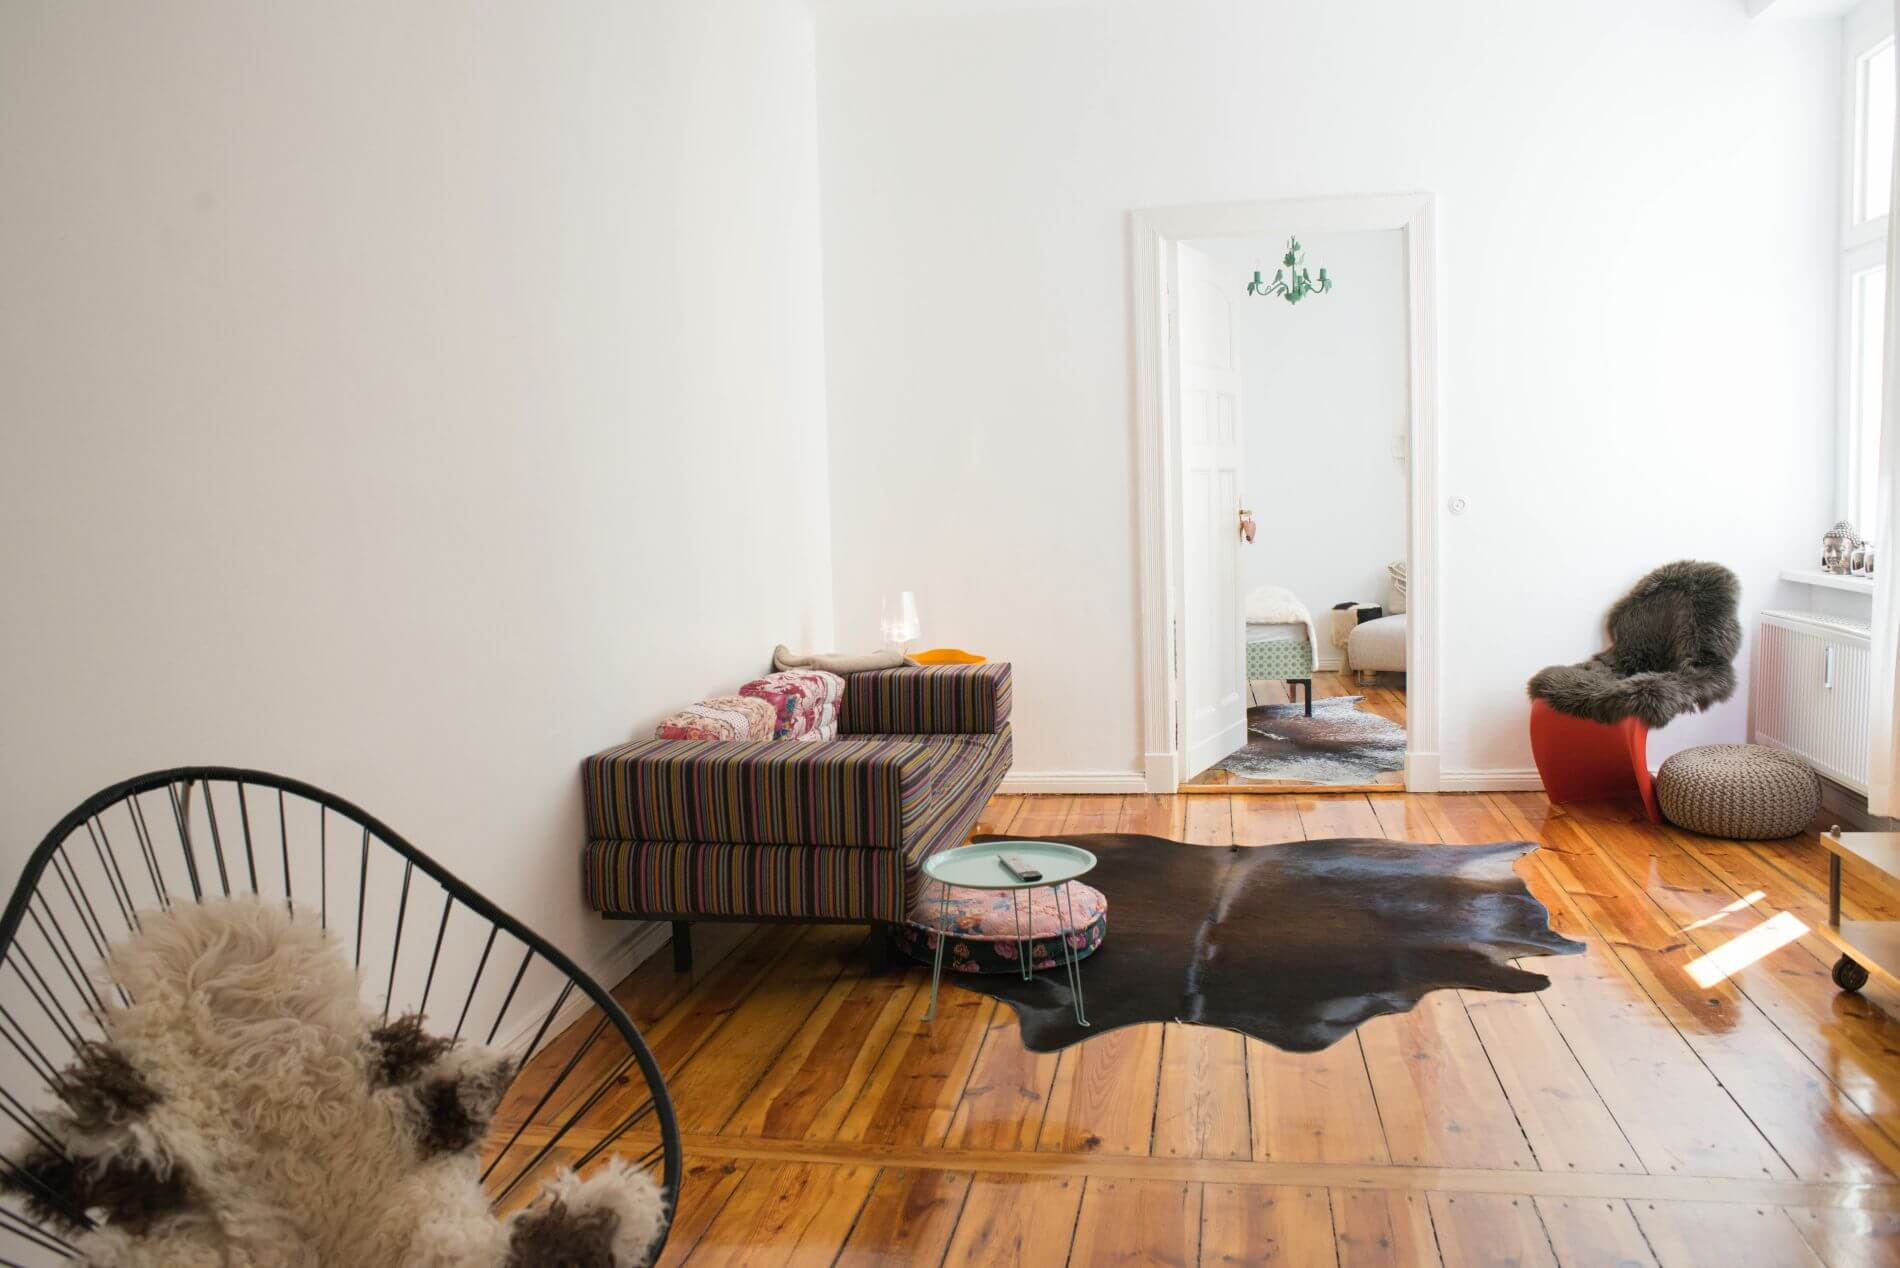 Furnished rental in Berlin with instant booking option